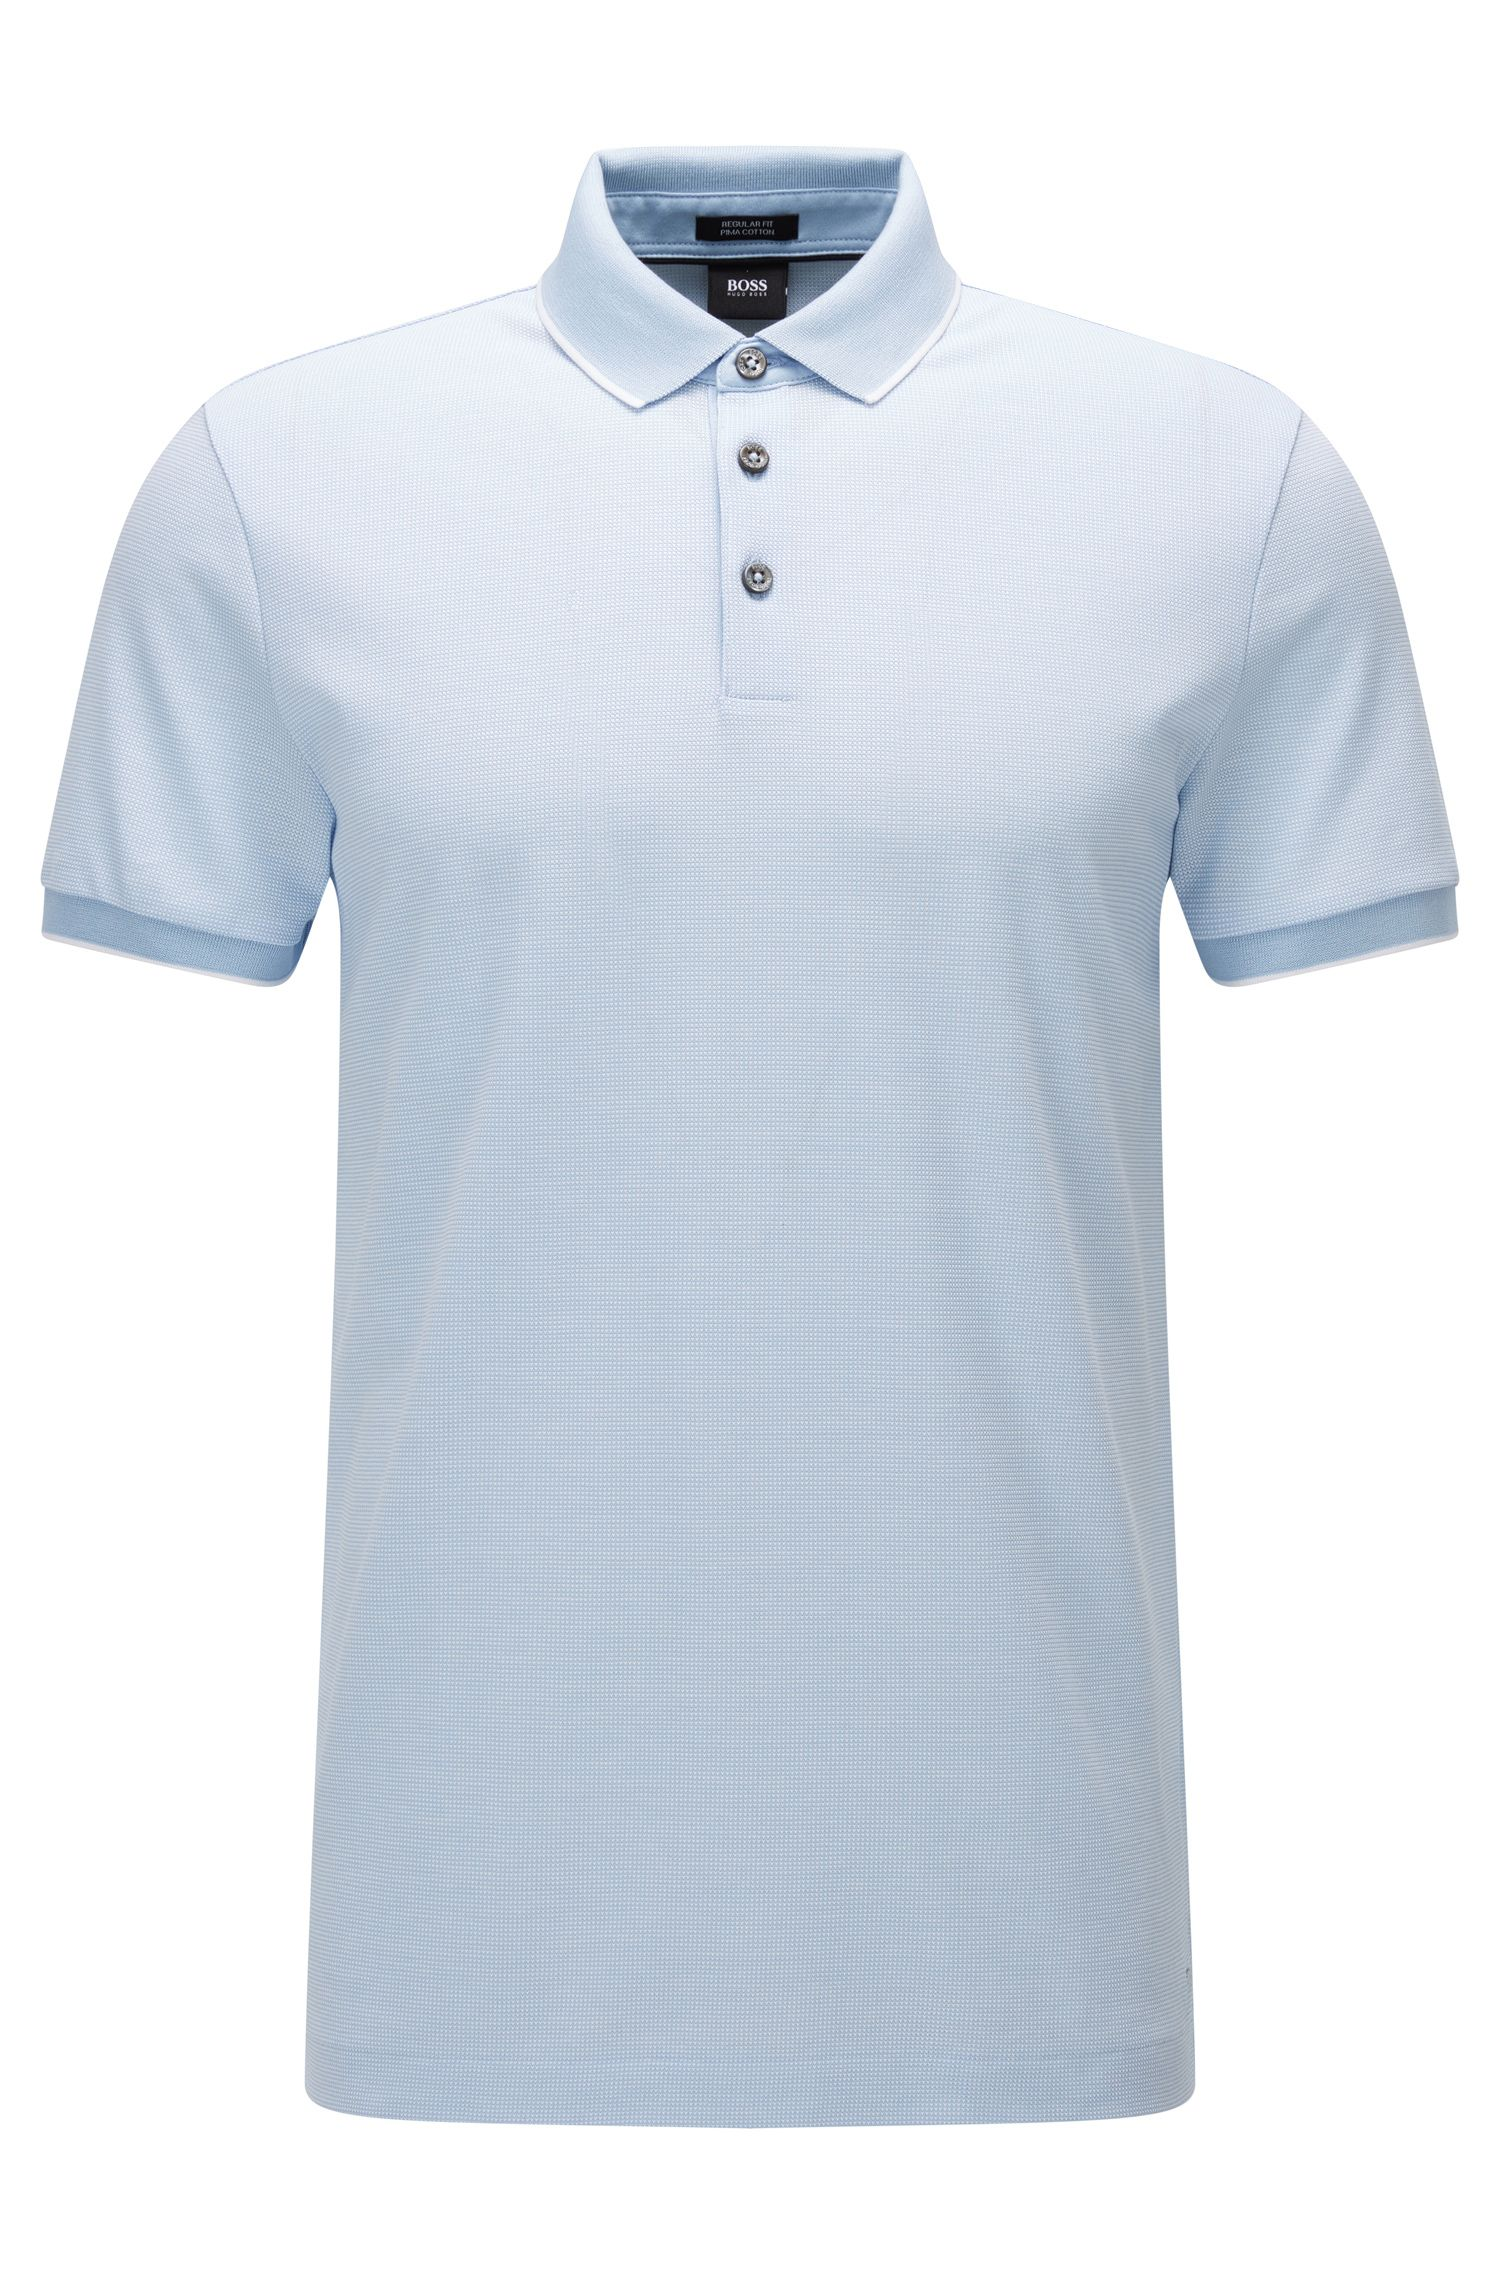 Birdseye Pima Cotton Polo Shirt, Regular Fit | Pack